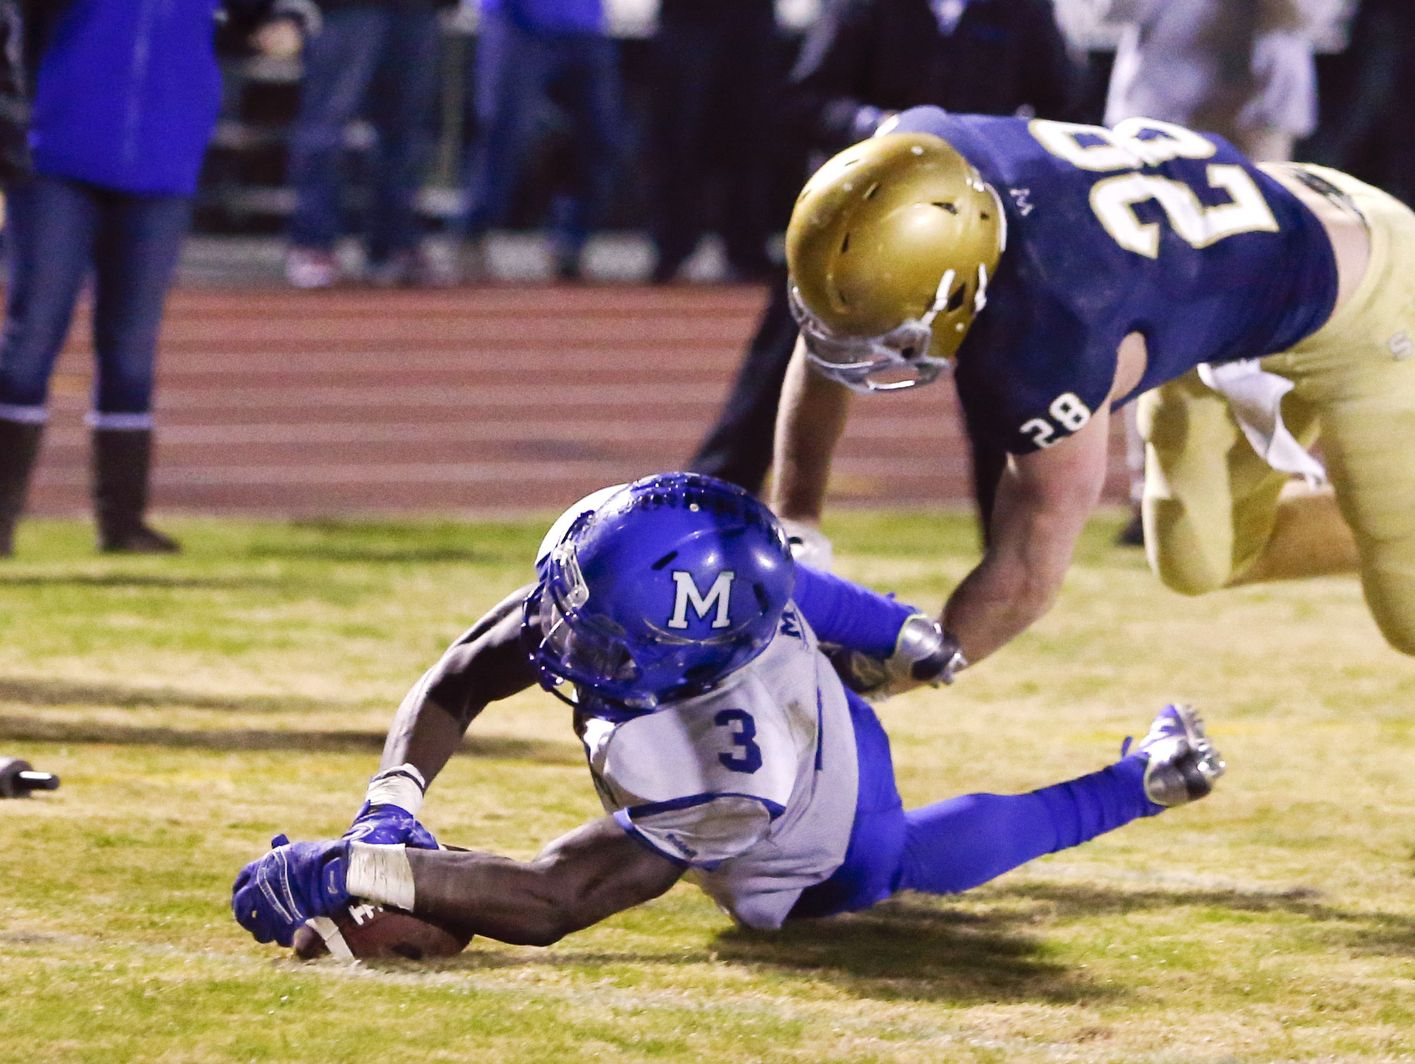 Middletown's Kedrick Whitehead (3) falls on his own fumble for a touchdown during last year's DIAA Division I state semifinal.